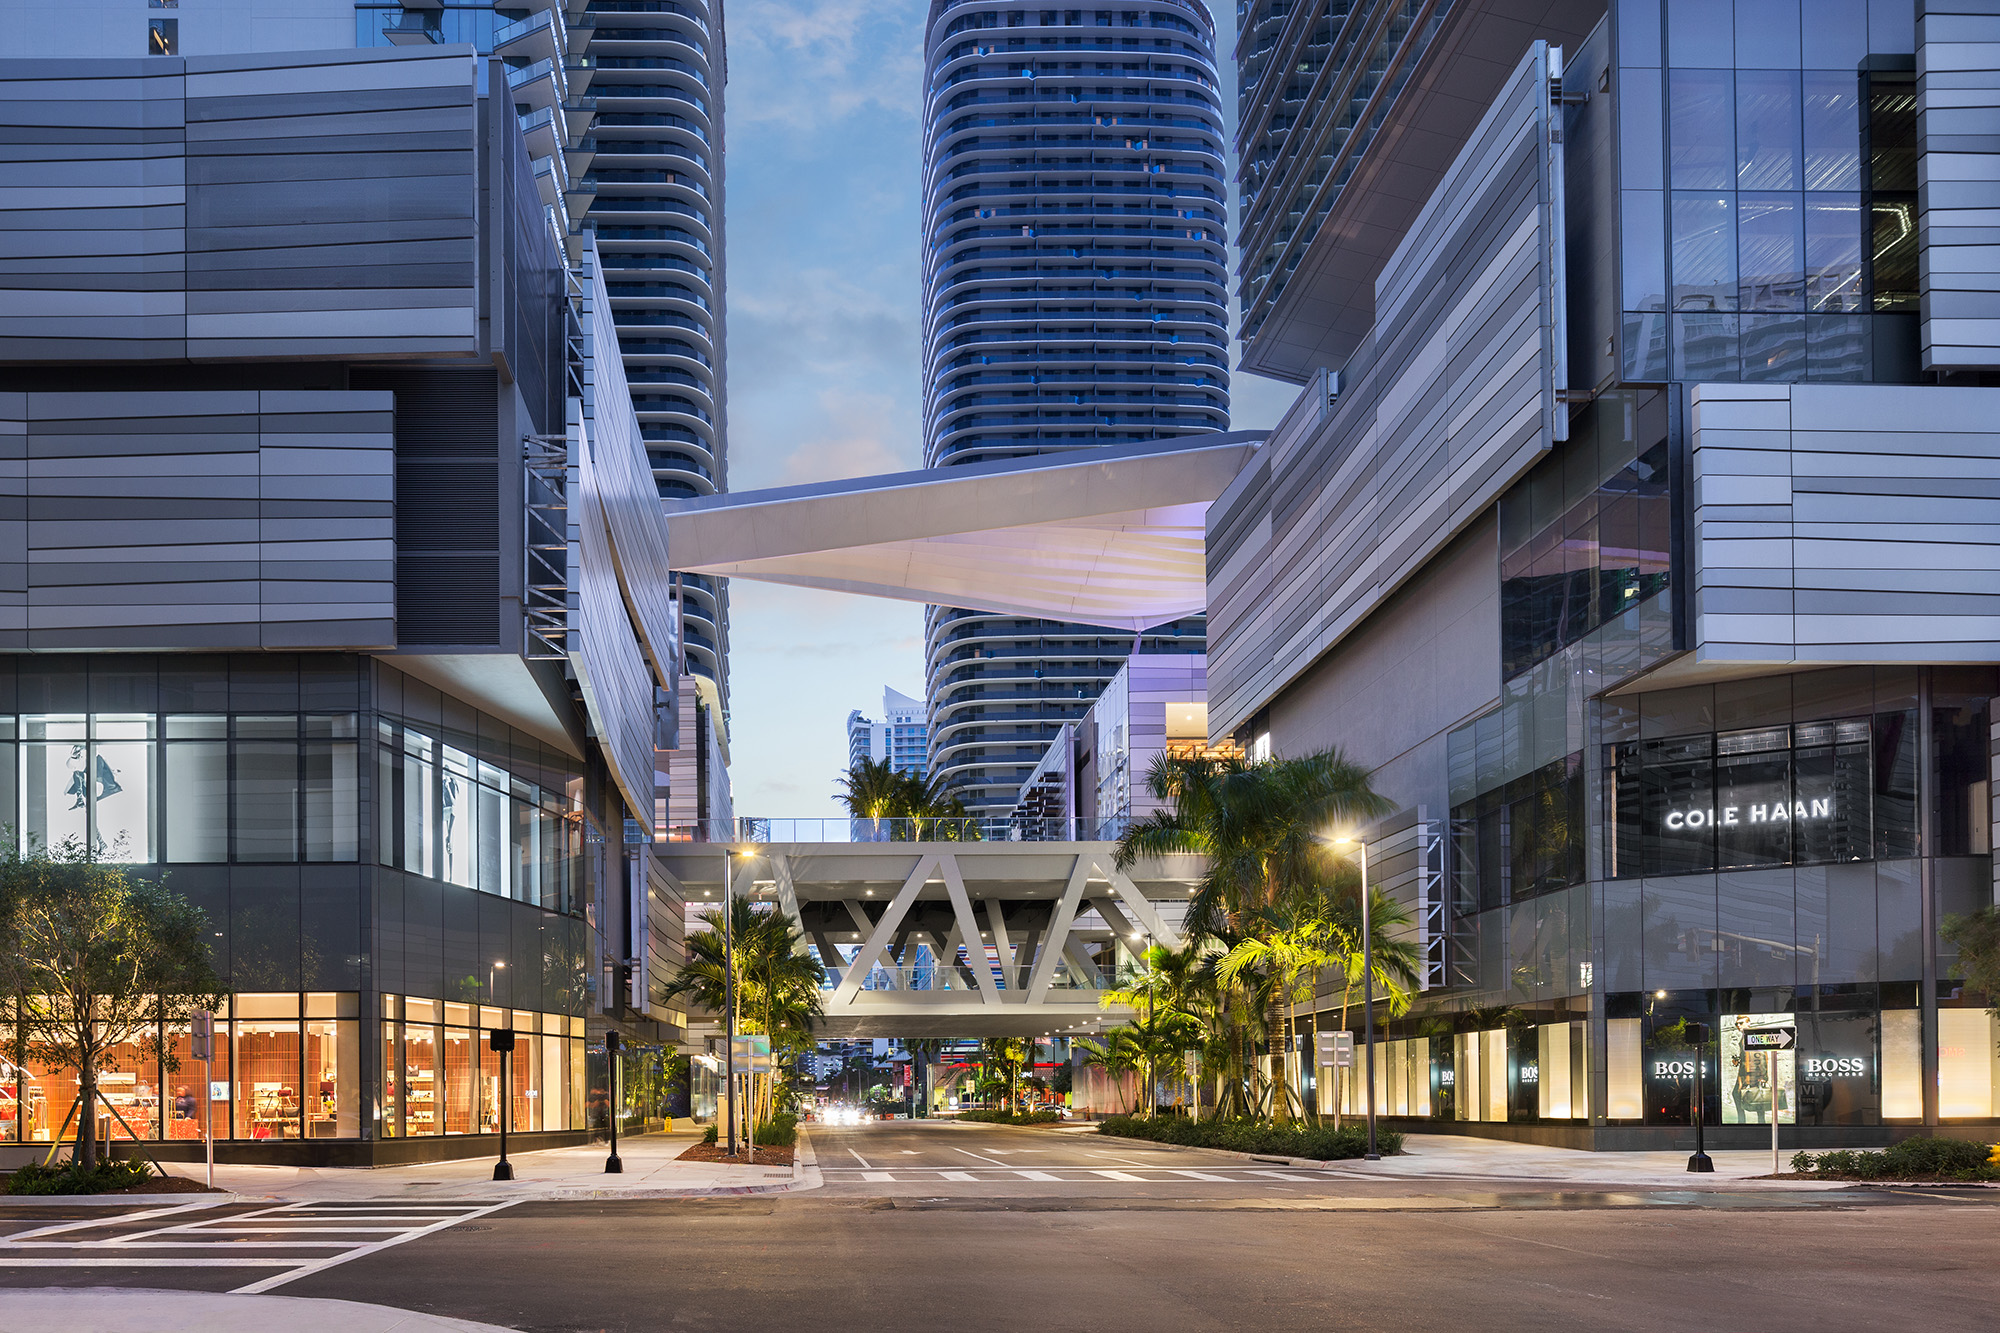 A street view of Brickell City Centre, a new goliath development in the heart of Miami